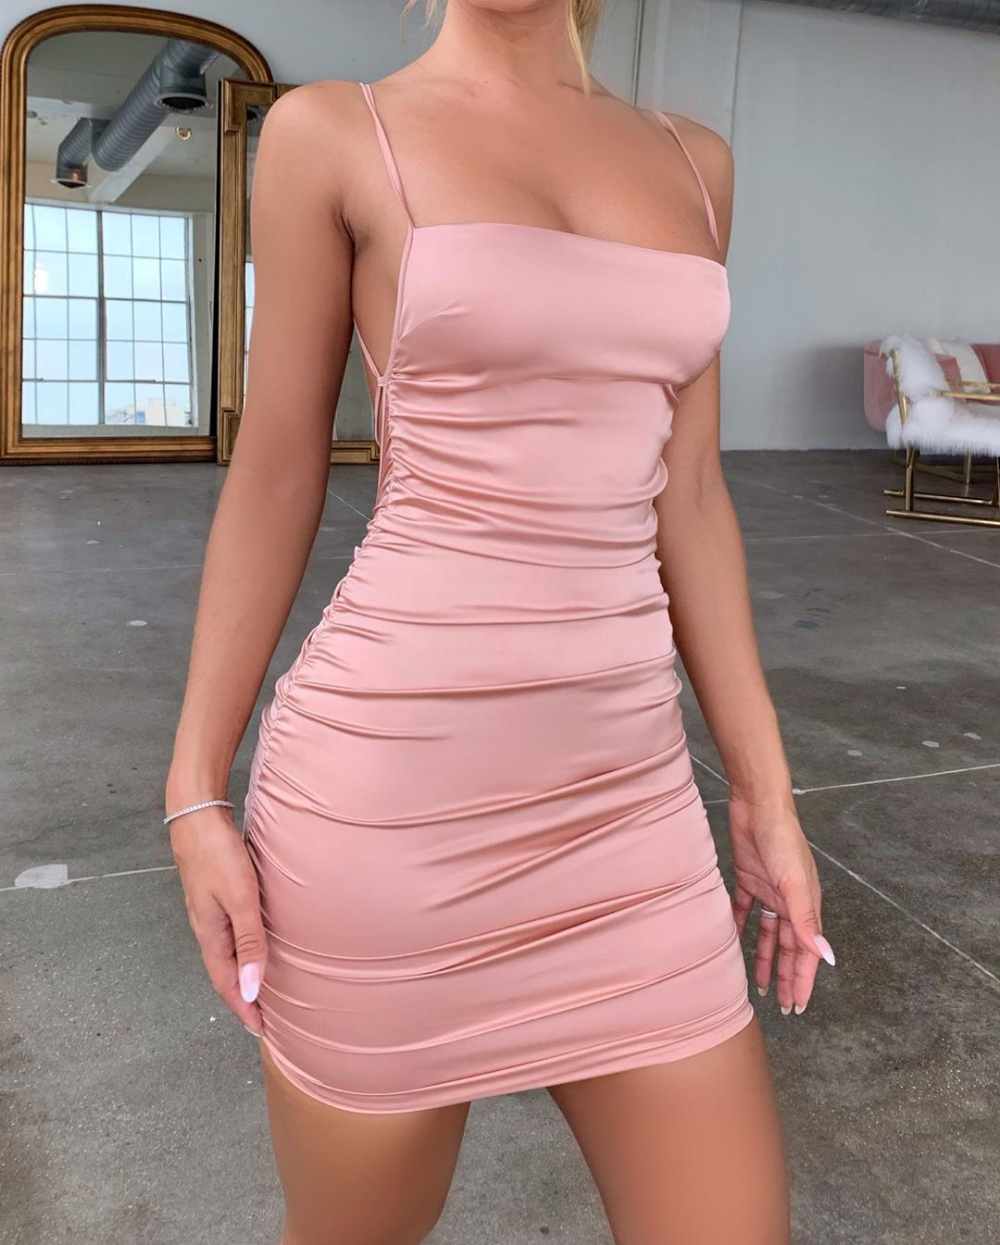 Spaghetti Strap Mini Satijnen Jurk Vrouwen Sexy Backless Cross Bandage Bodycon Party Dress Plisse Stretch Korte Club Jurk